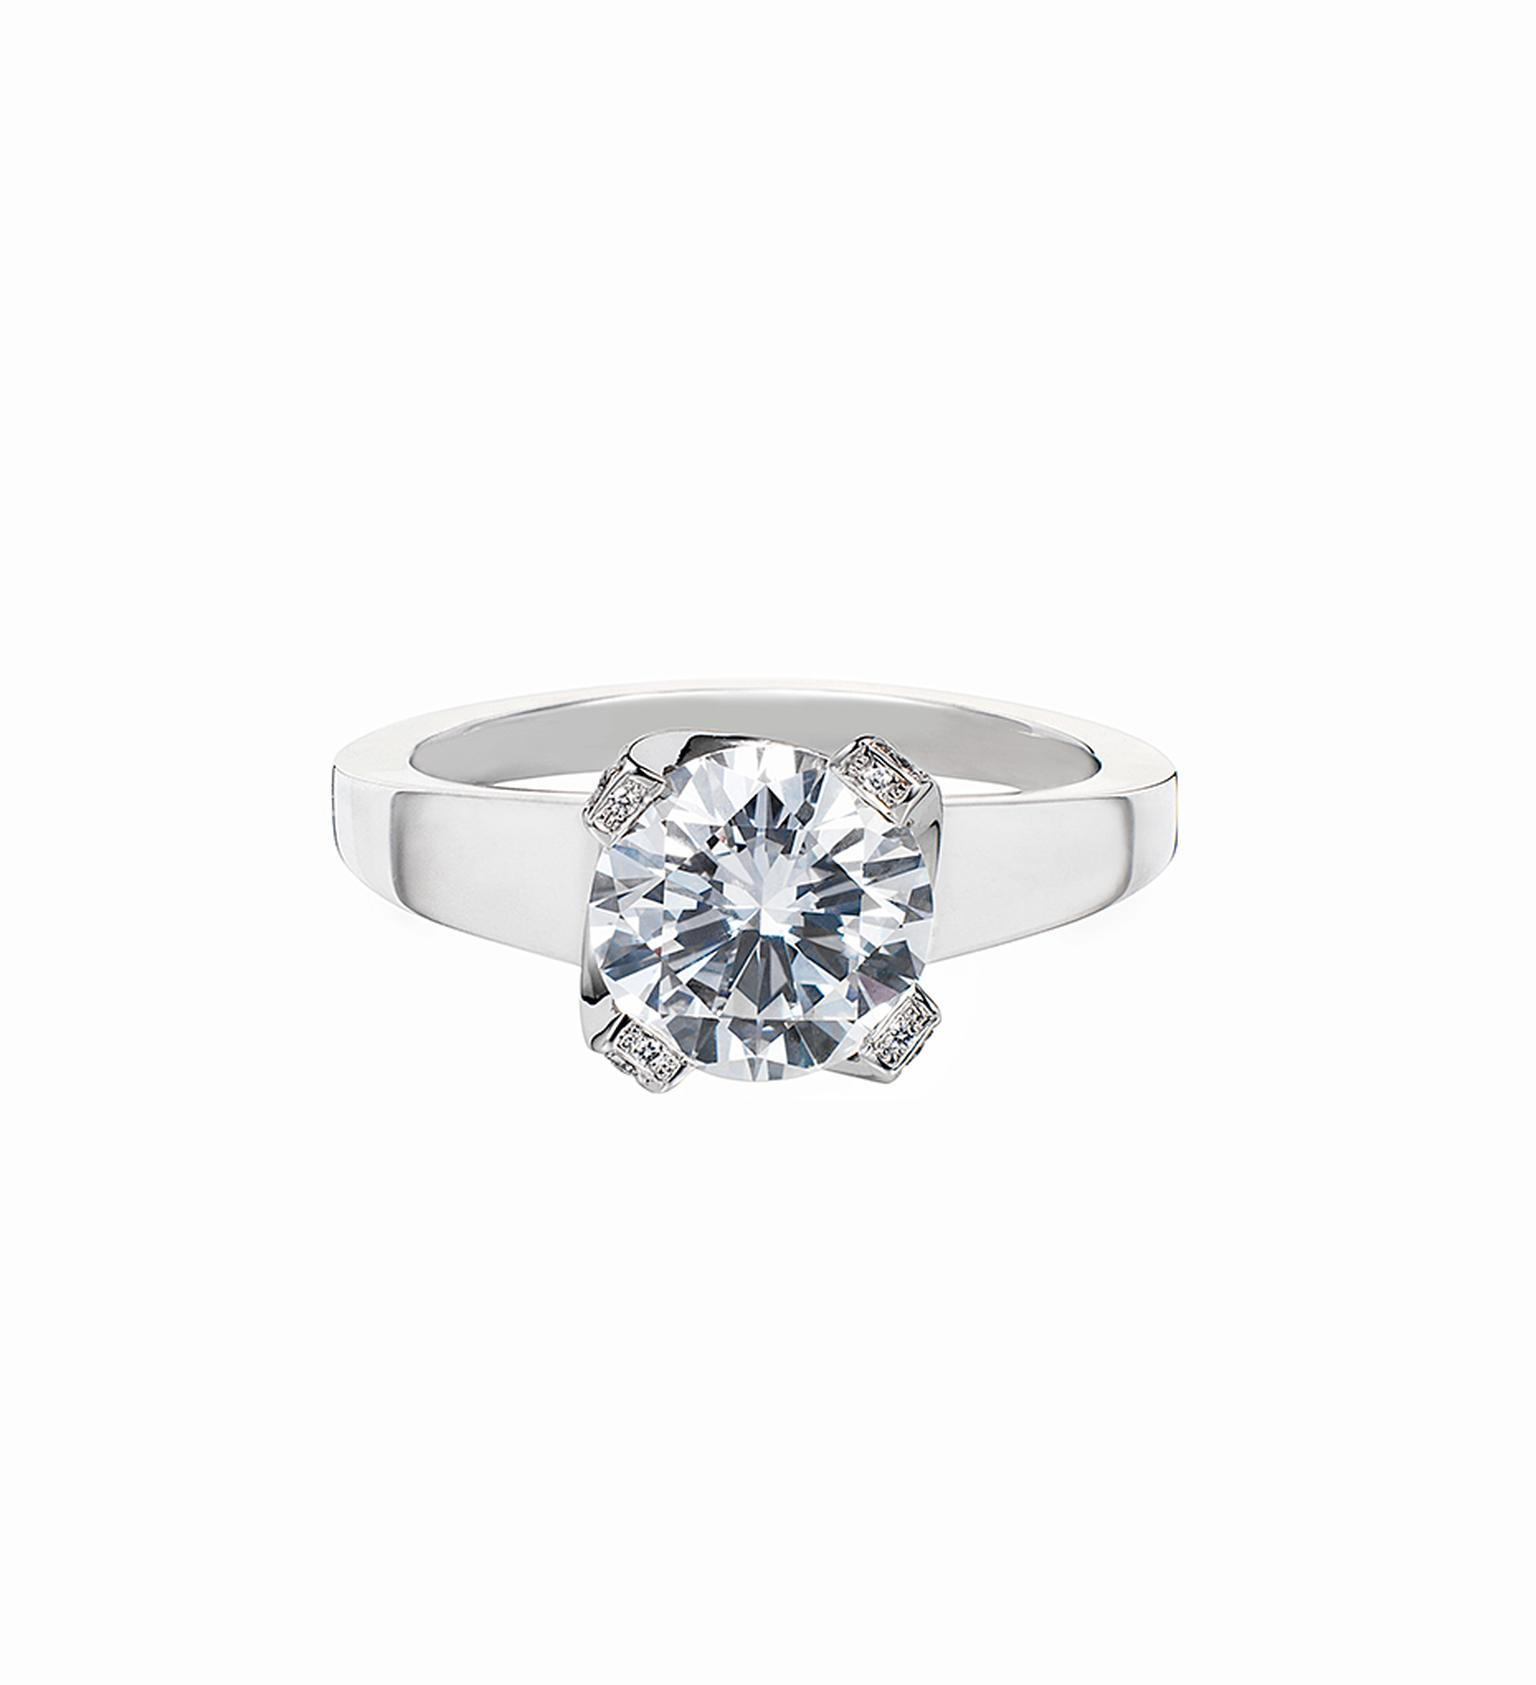 Ritz Fine Jewellery 1.51ct brilliant-cut diamond engagement ring with a ribbon setting.